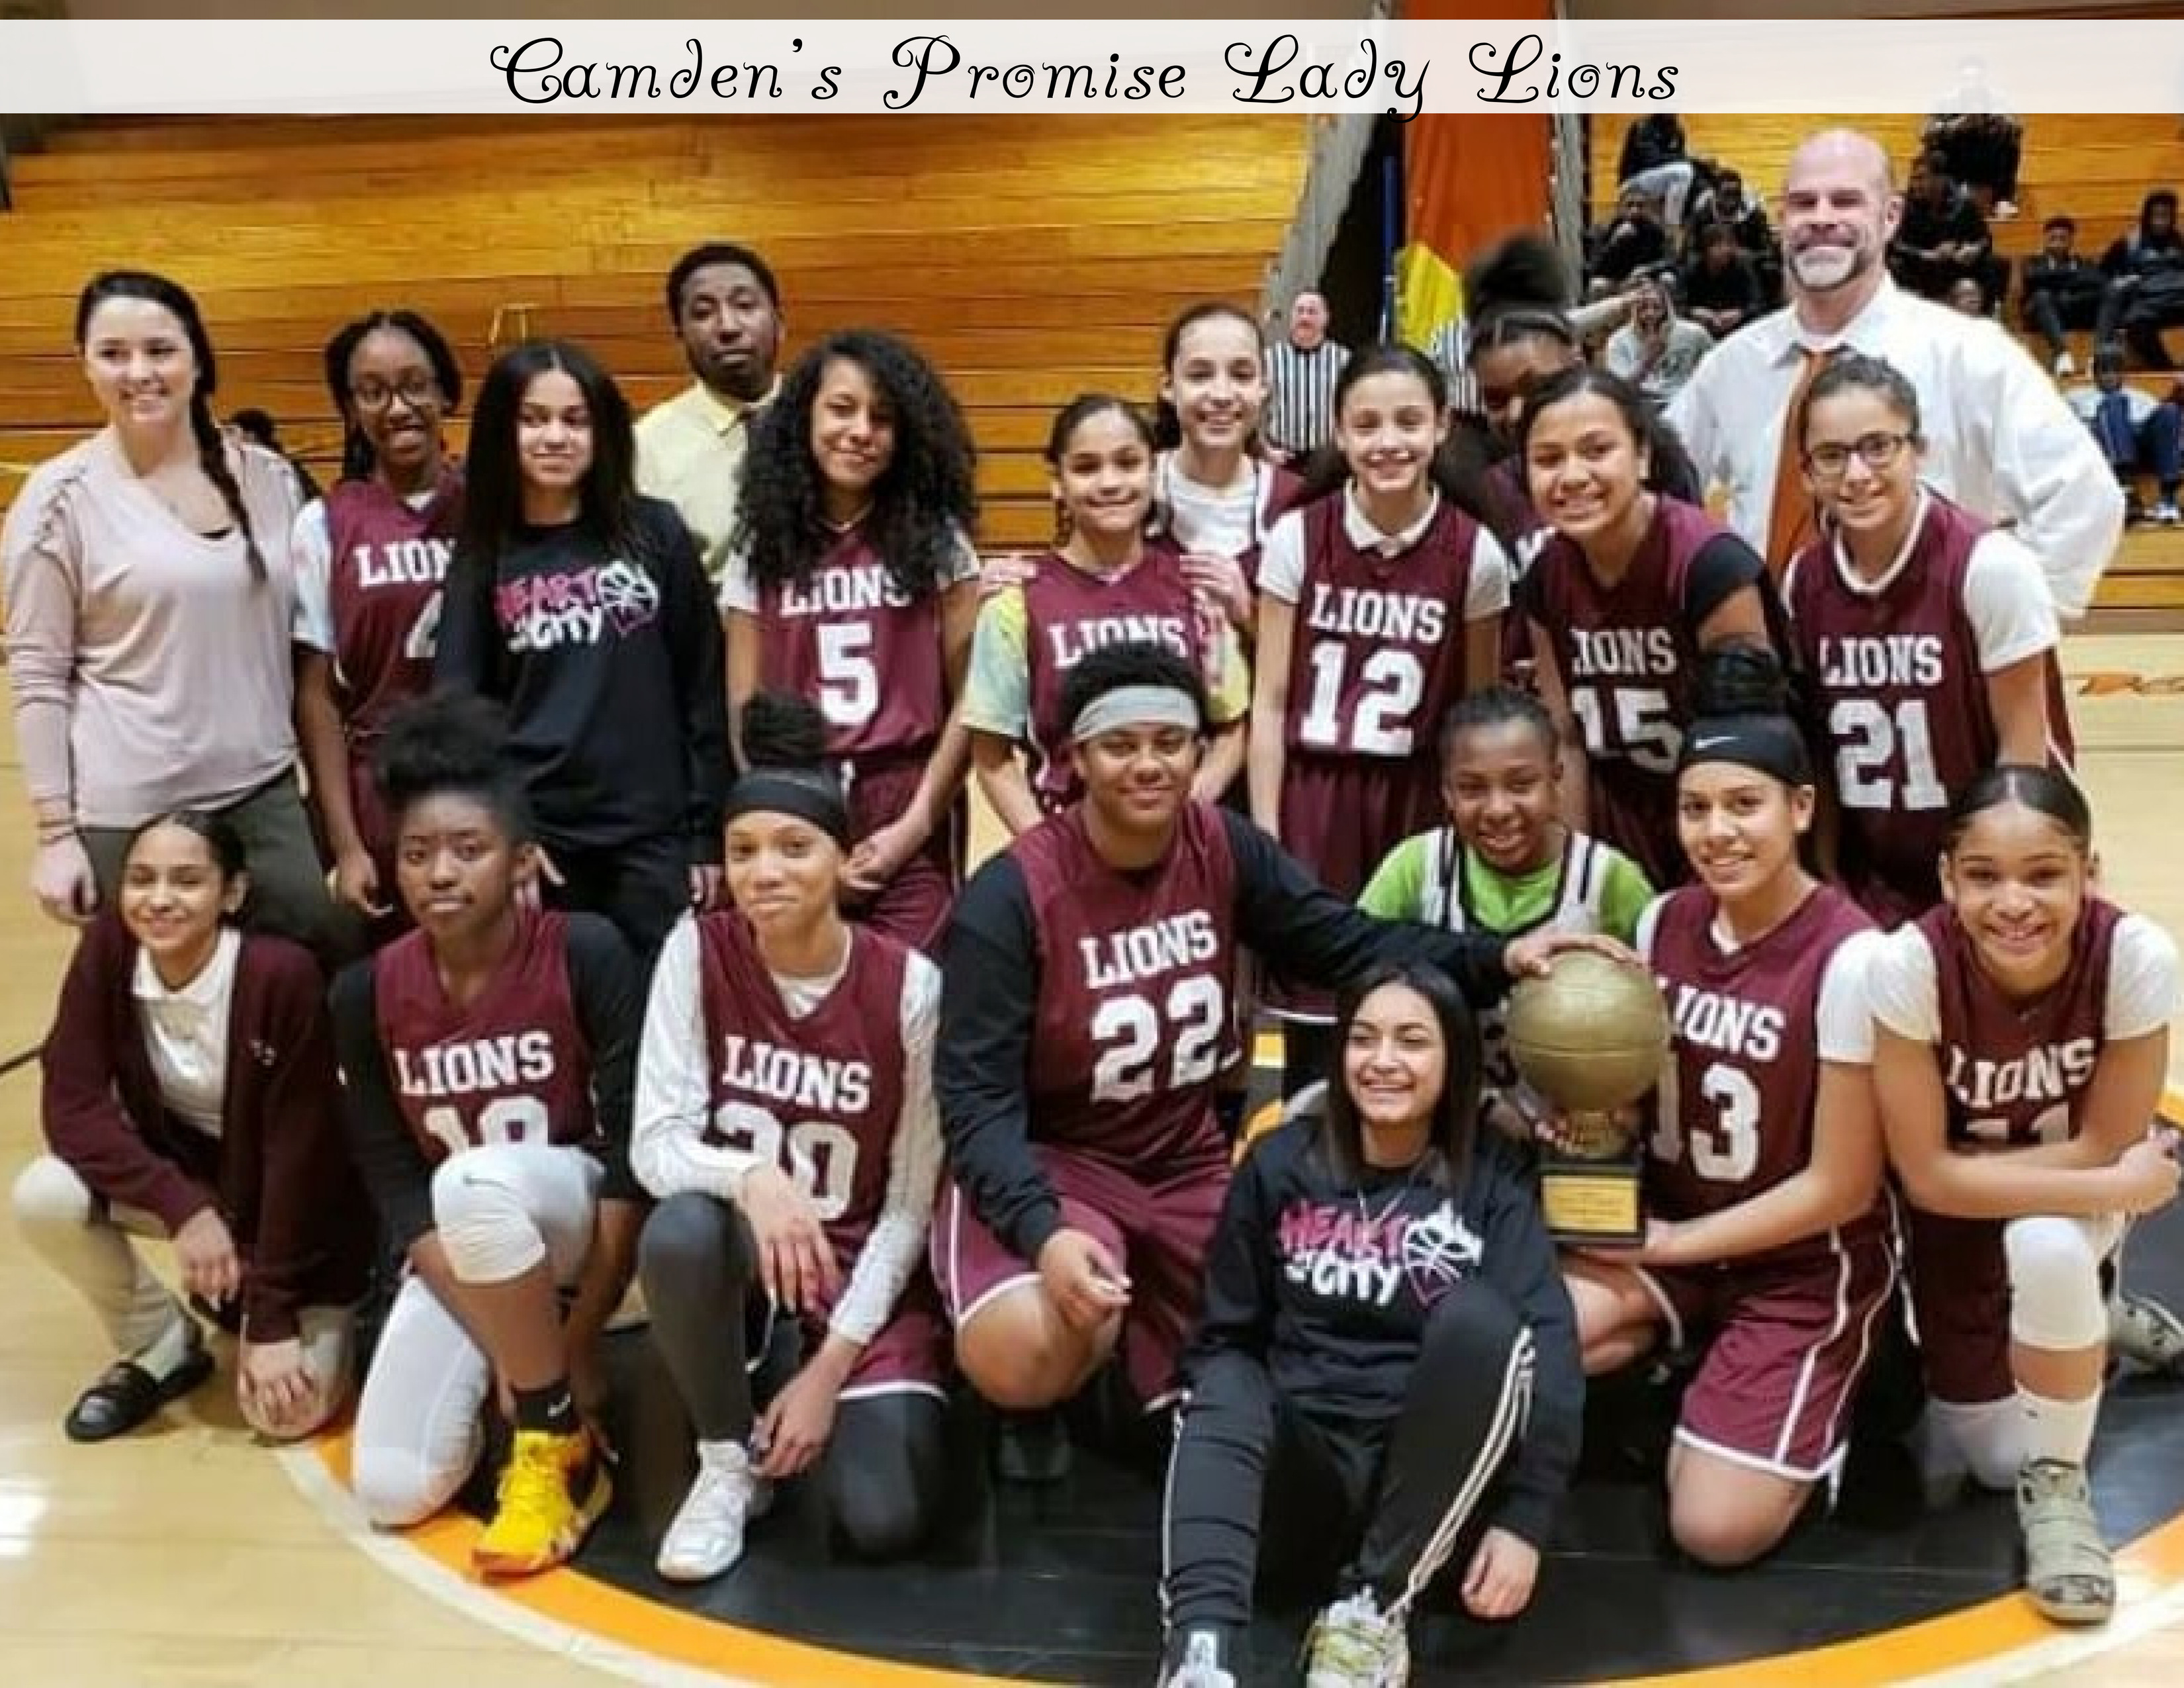 Camden's Promise Lady Lions